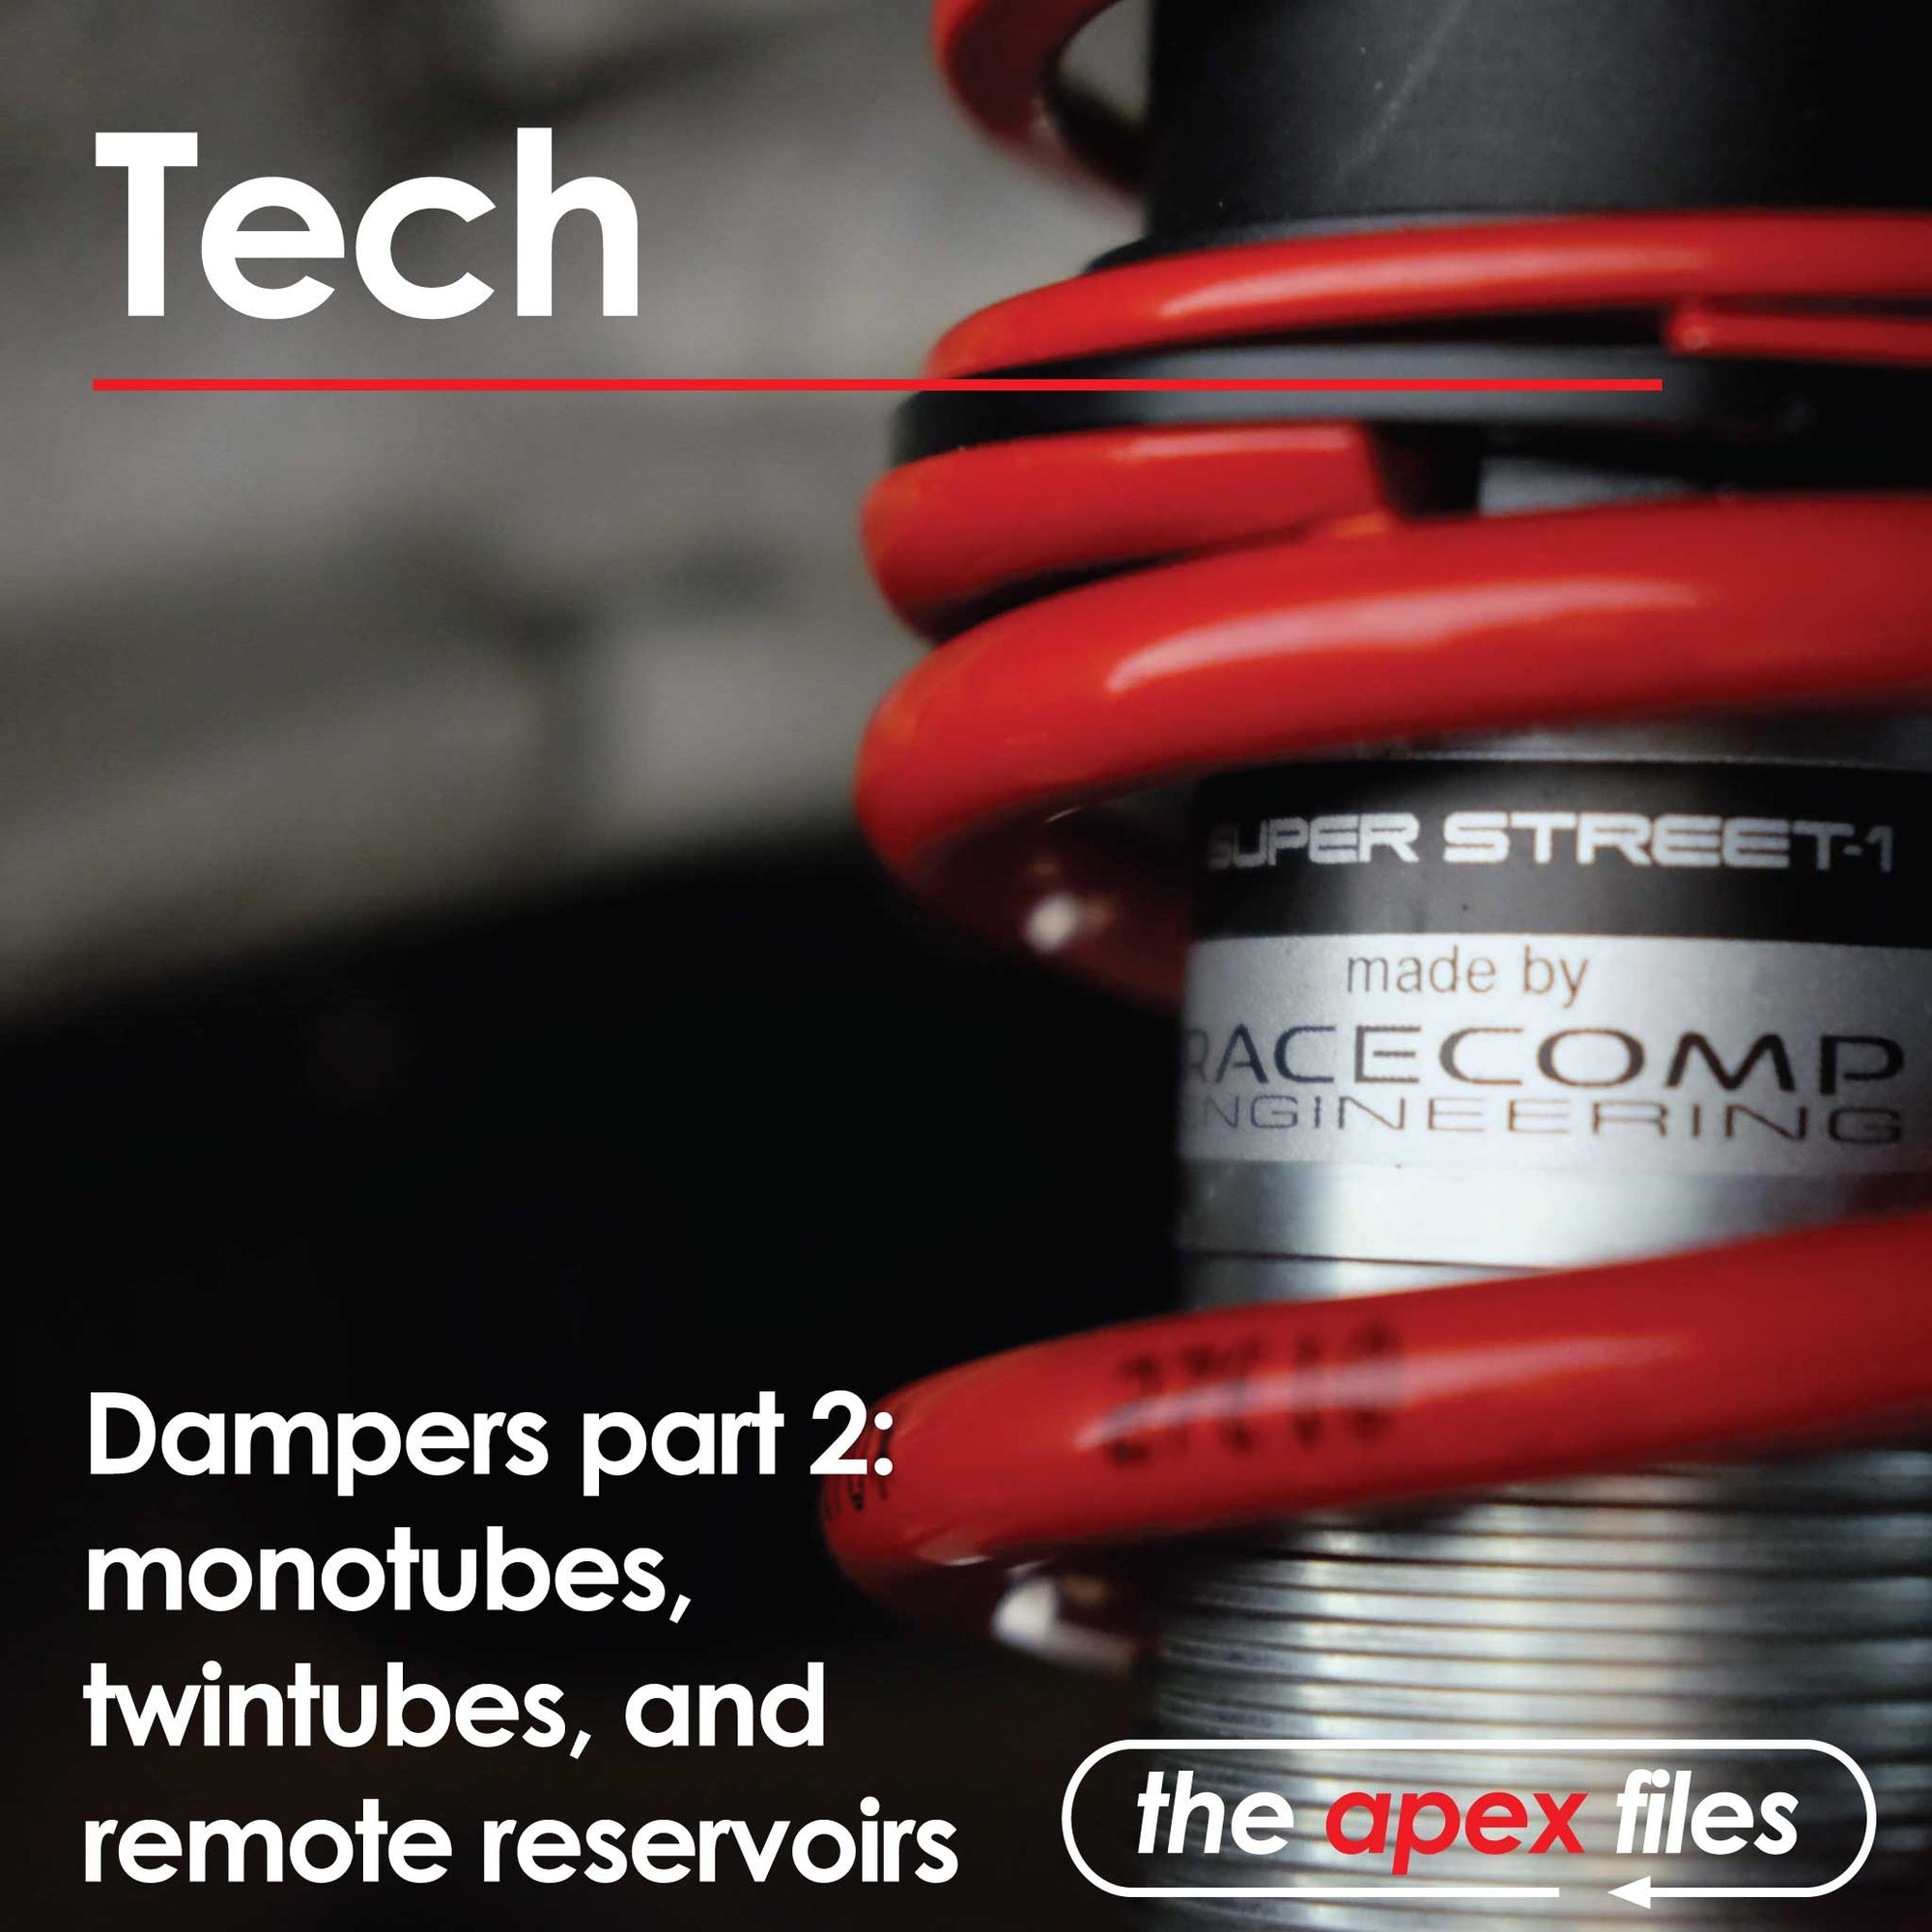 Dampers, Part 2